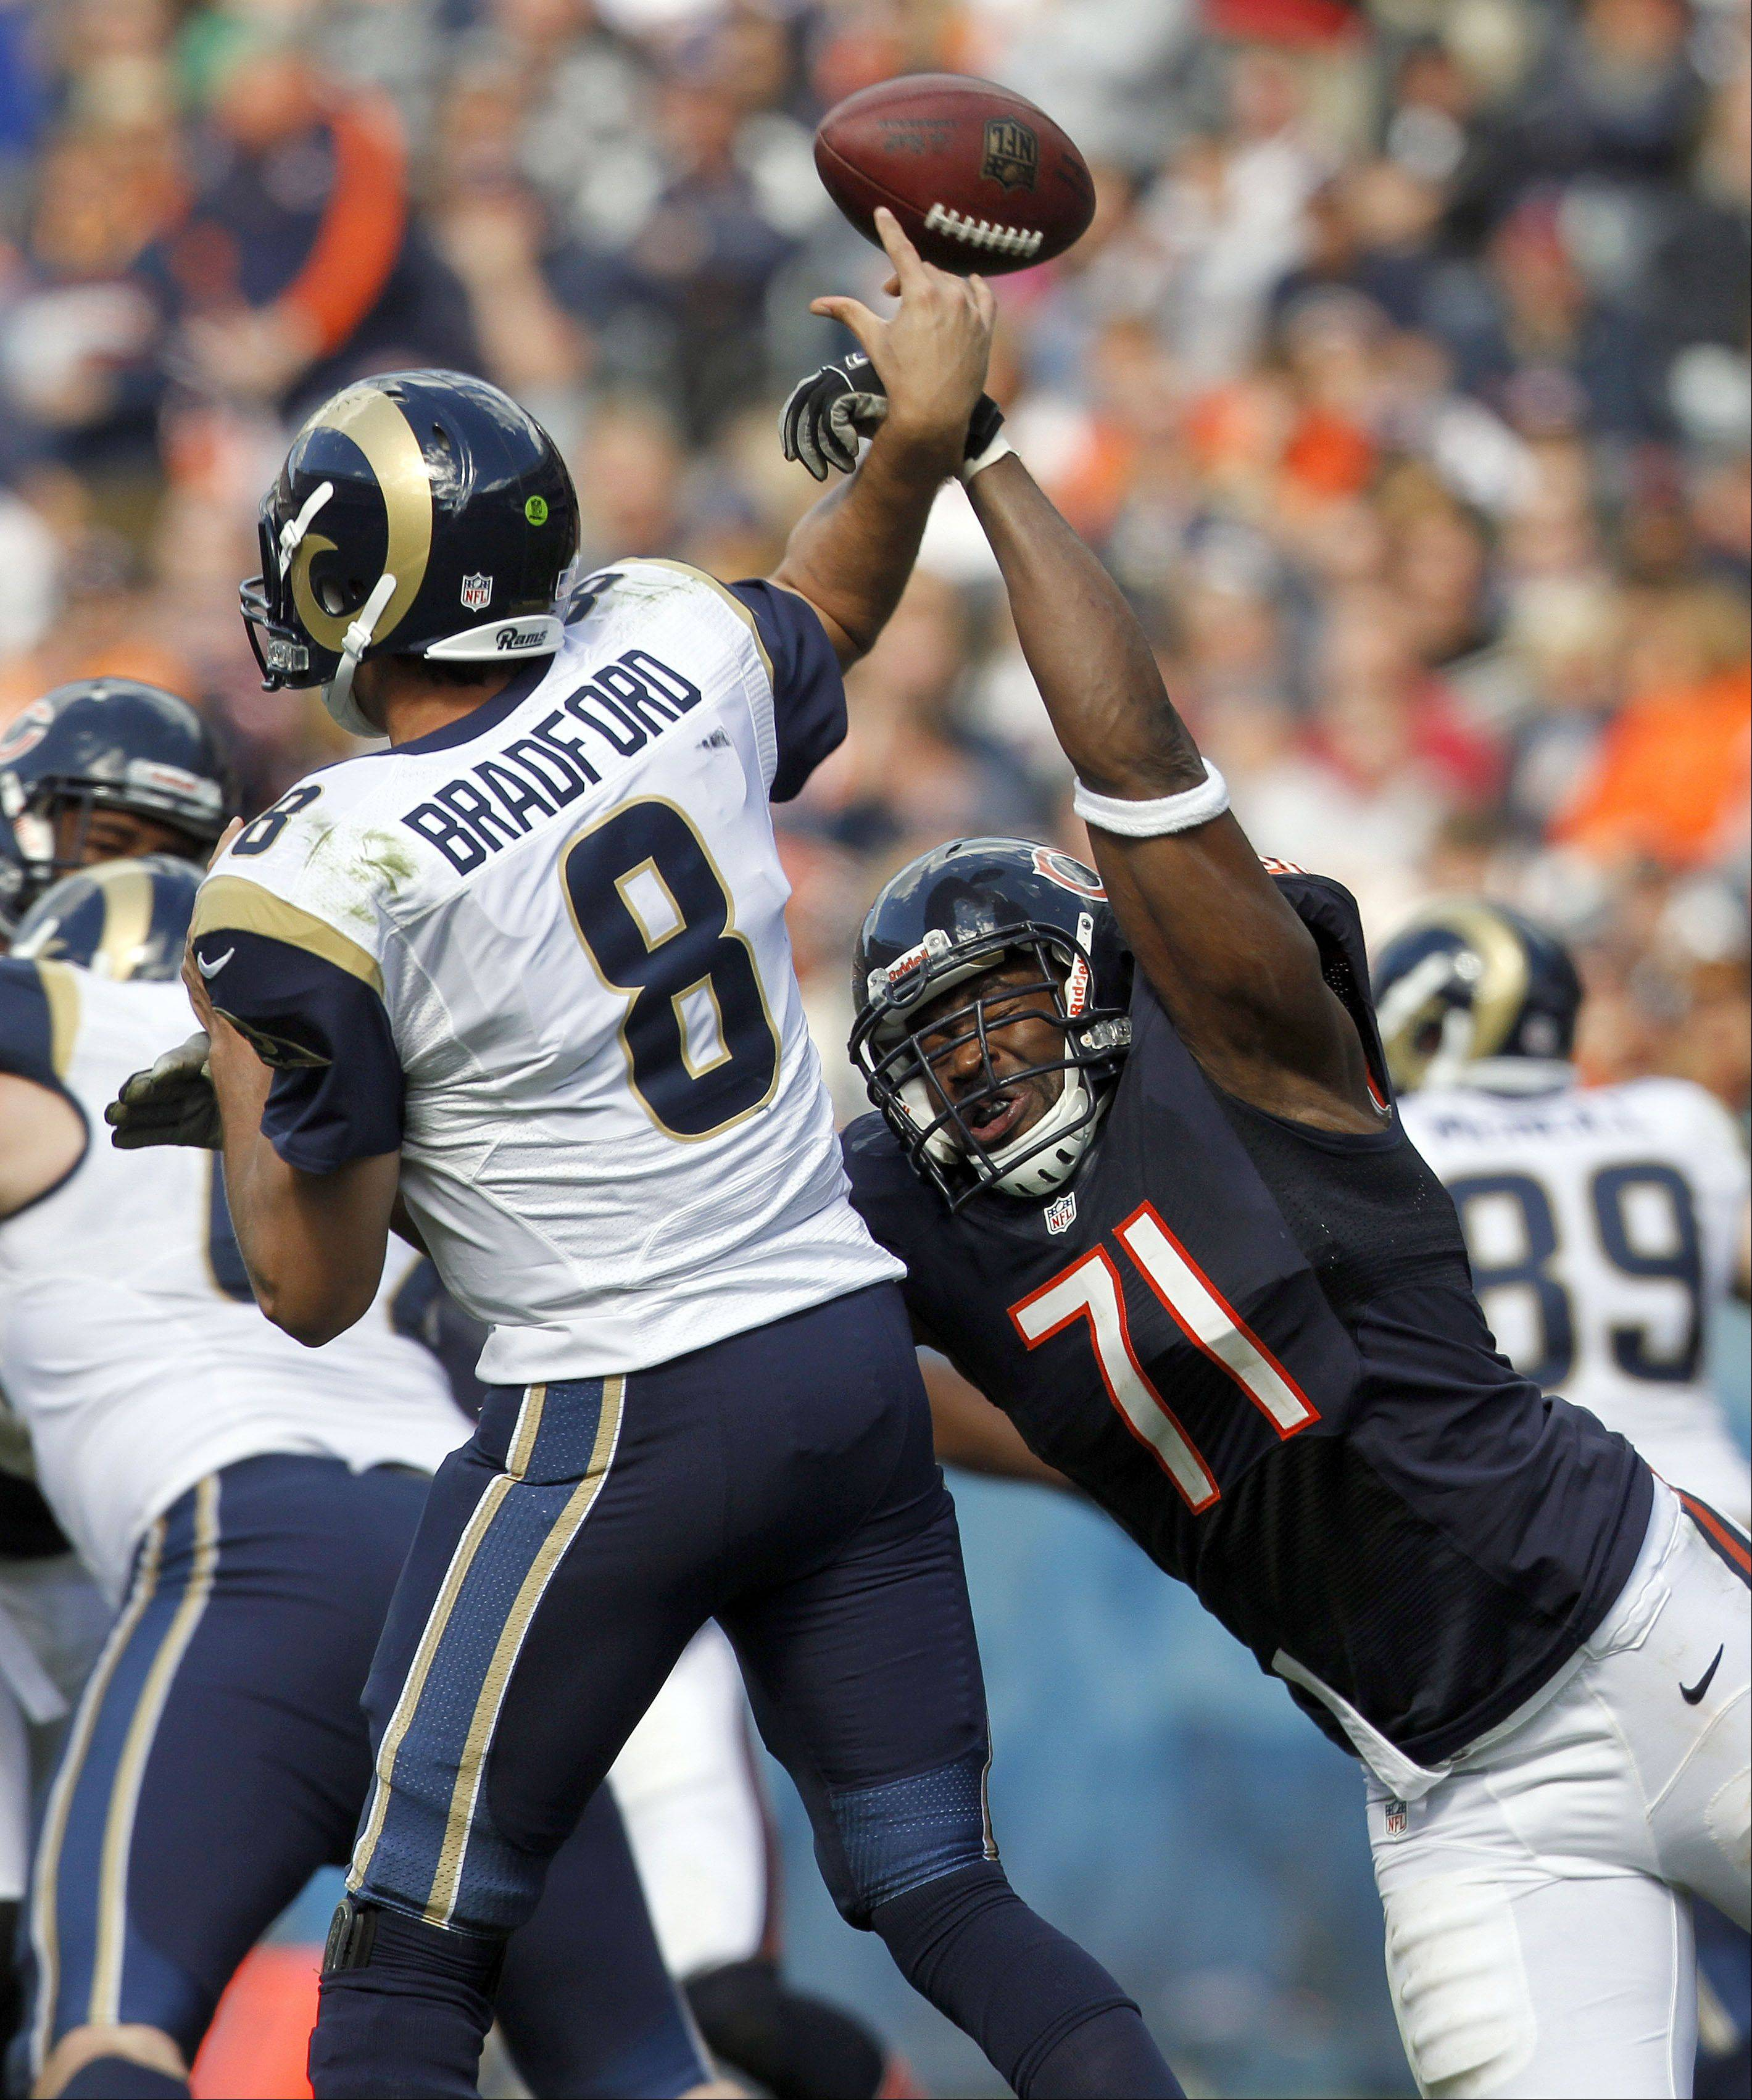 Bears defensive end Israel Idonije hits St. Louis Rams quarterback Sam Bradford's arm as he throws during the Bears 23-6 win Sunday at Soldier Field in Chicago.